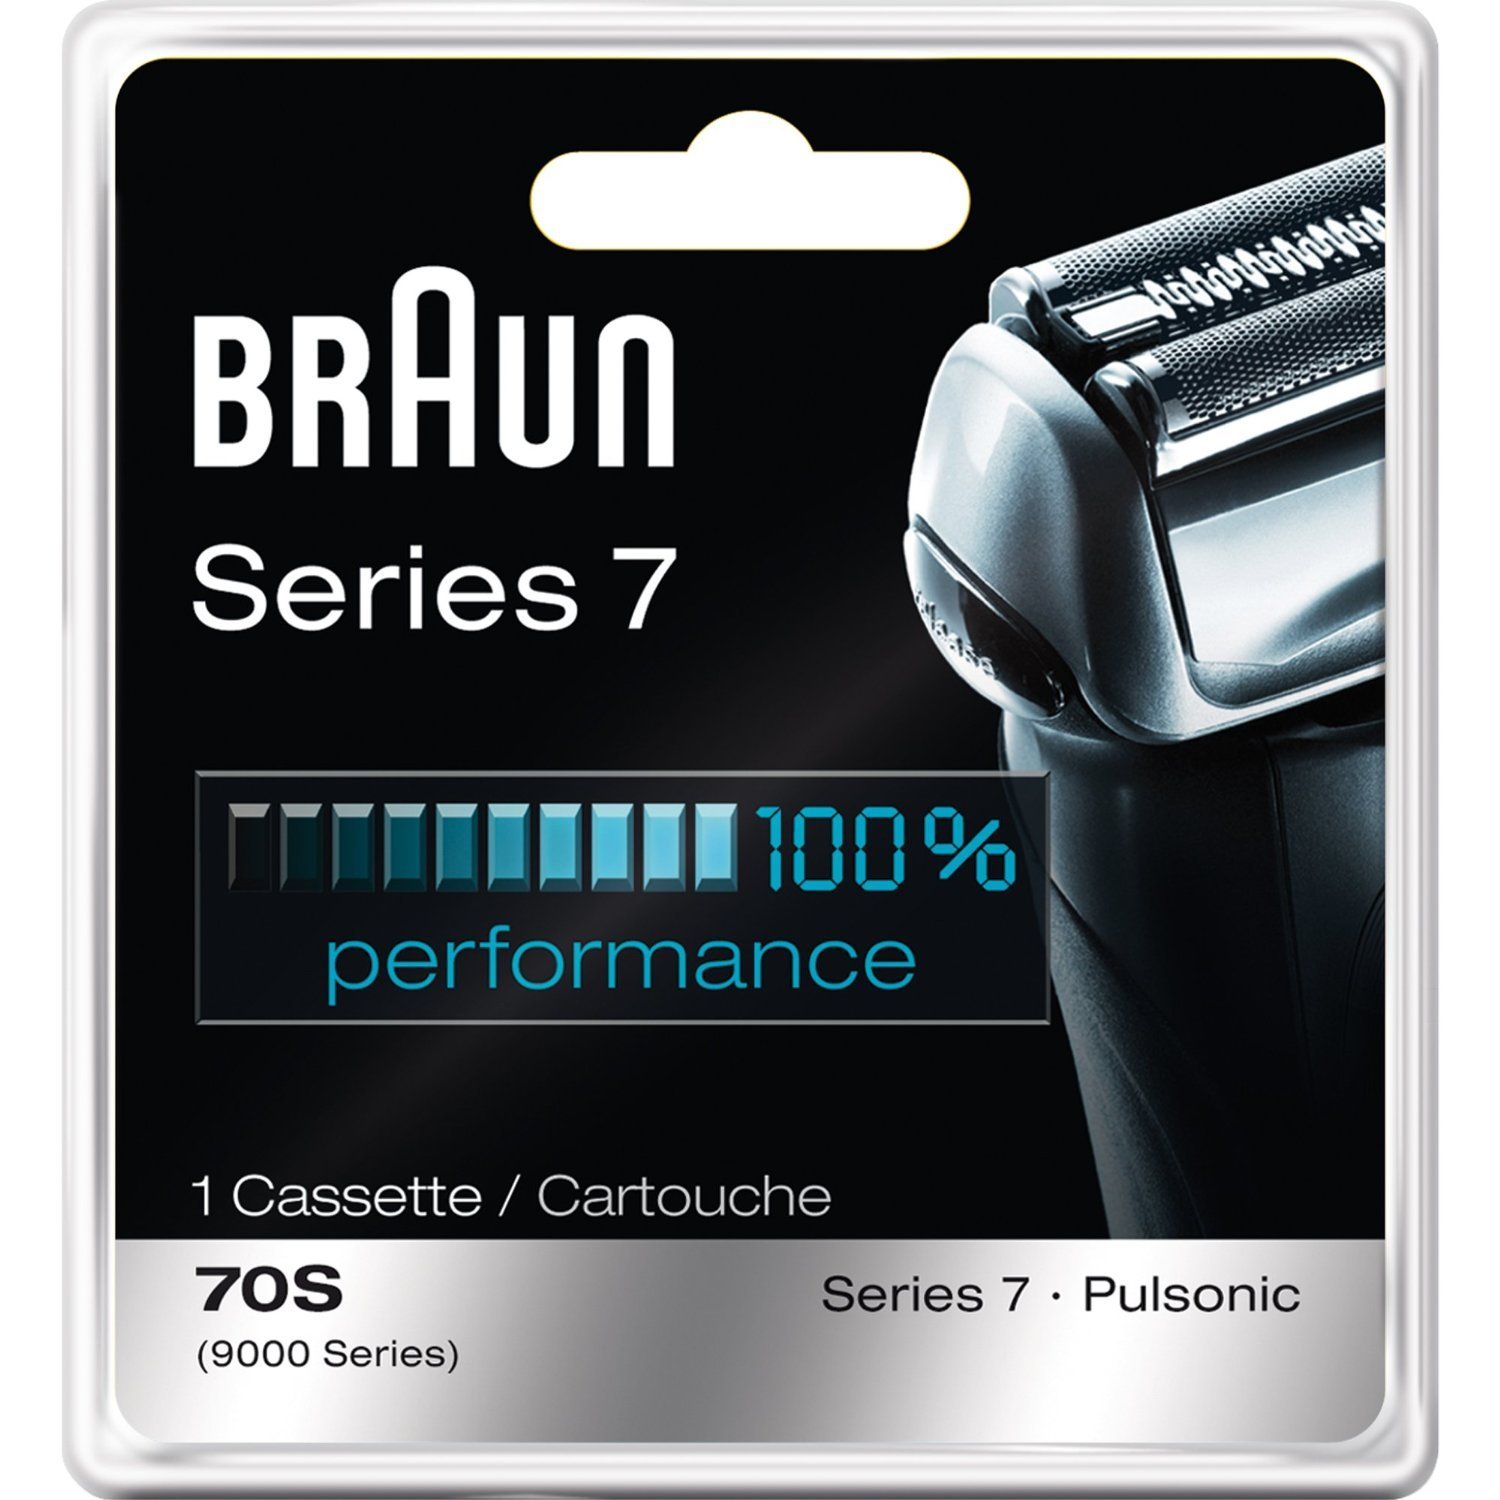 Braun Series 7 Combi 70S Cassette Replacement (Formerly 9000 Pulsonic)-All New Value Pkg (2 Refills)